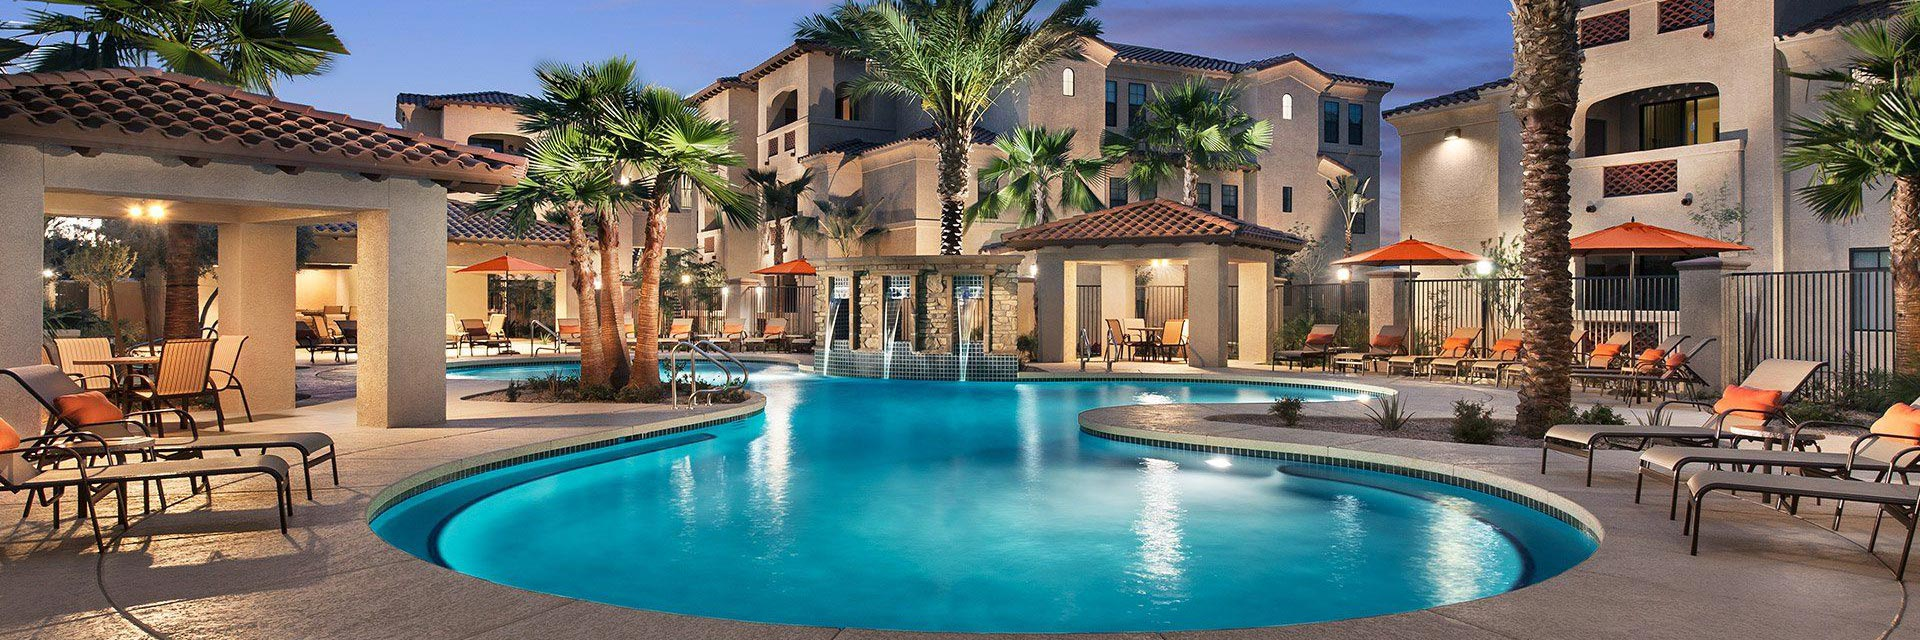 Phoenix / Scottsdale, AZ: Brand new luxury Villa + SunRidge / Eagle Mtn / Dinosaur Mtn / Lookout Mtn for $99.00 per person, per day!